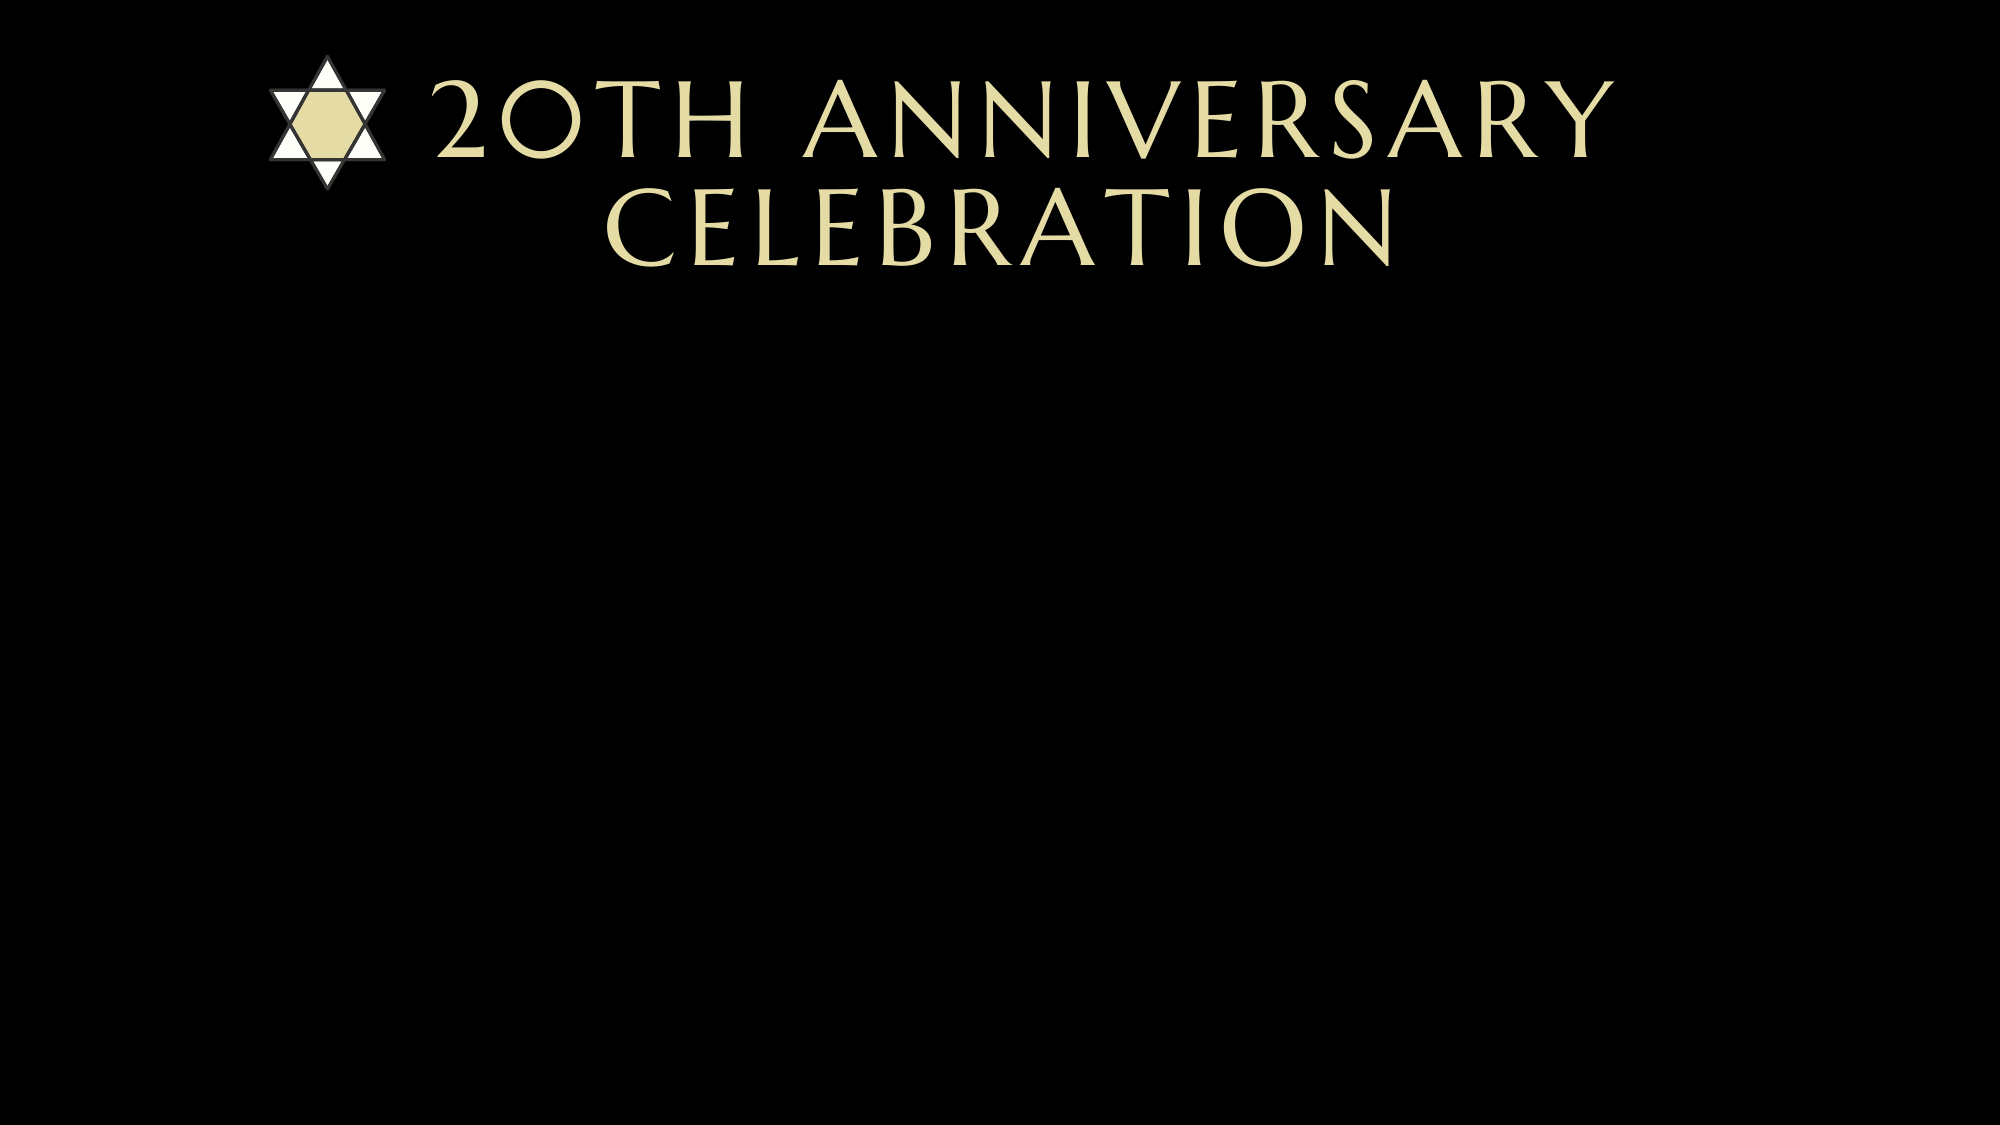 """<a href=""""https://www.bethshalomaustin.org/anniversary""""                                     target=""""_blank"""">                                                                 <span class=""""slider_title"""">                                     Coming Together                                </span>                                                                 </a>                                                                                                                                                                                       <span class=""""slider_description"""">Celebrate our special anniversary with us!</span>                                                                                     <a href=""""https://www.bethshalomaustin.org/anniversary"""" class=""""slider_link""""                             target=""""_blank"""">                             Learn more.                            </a>"""